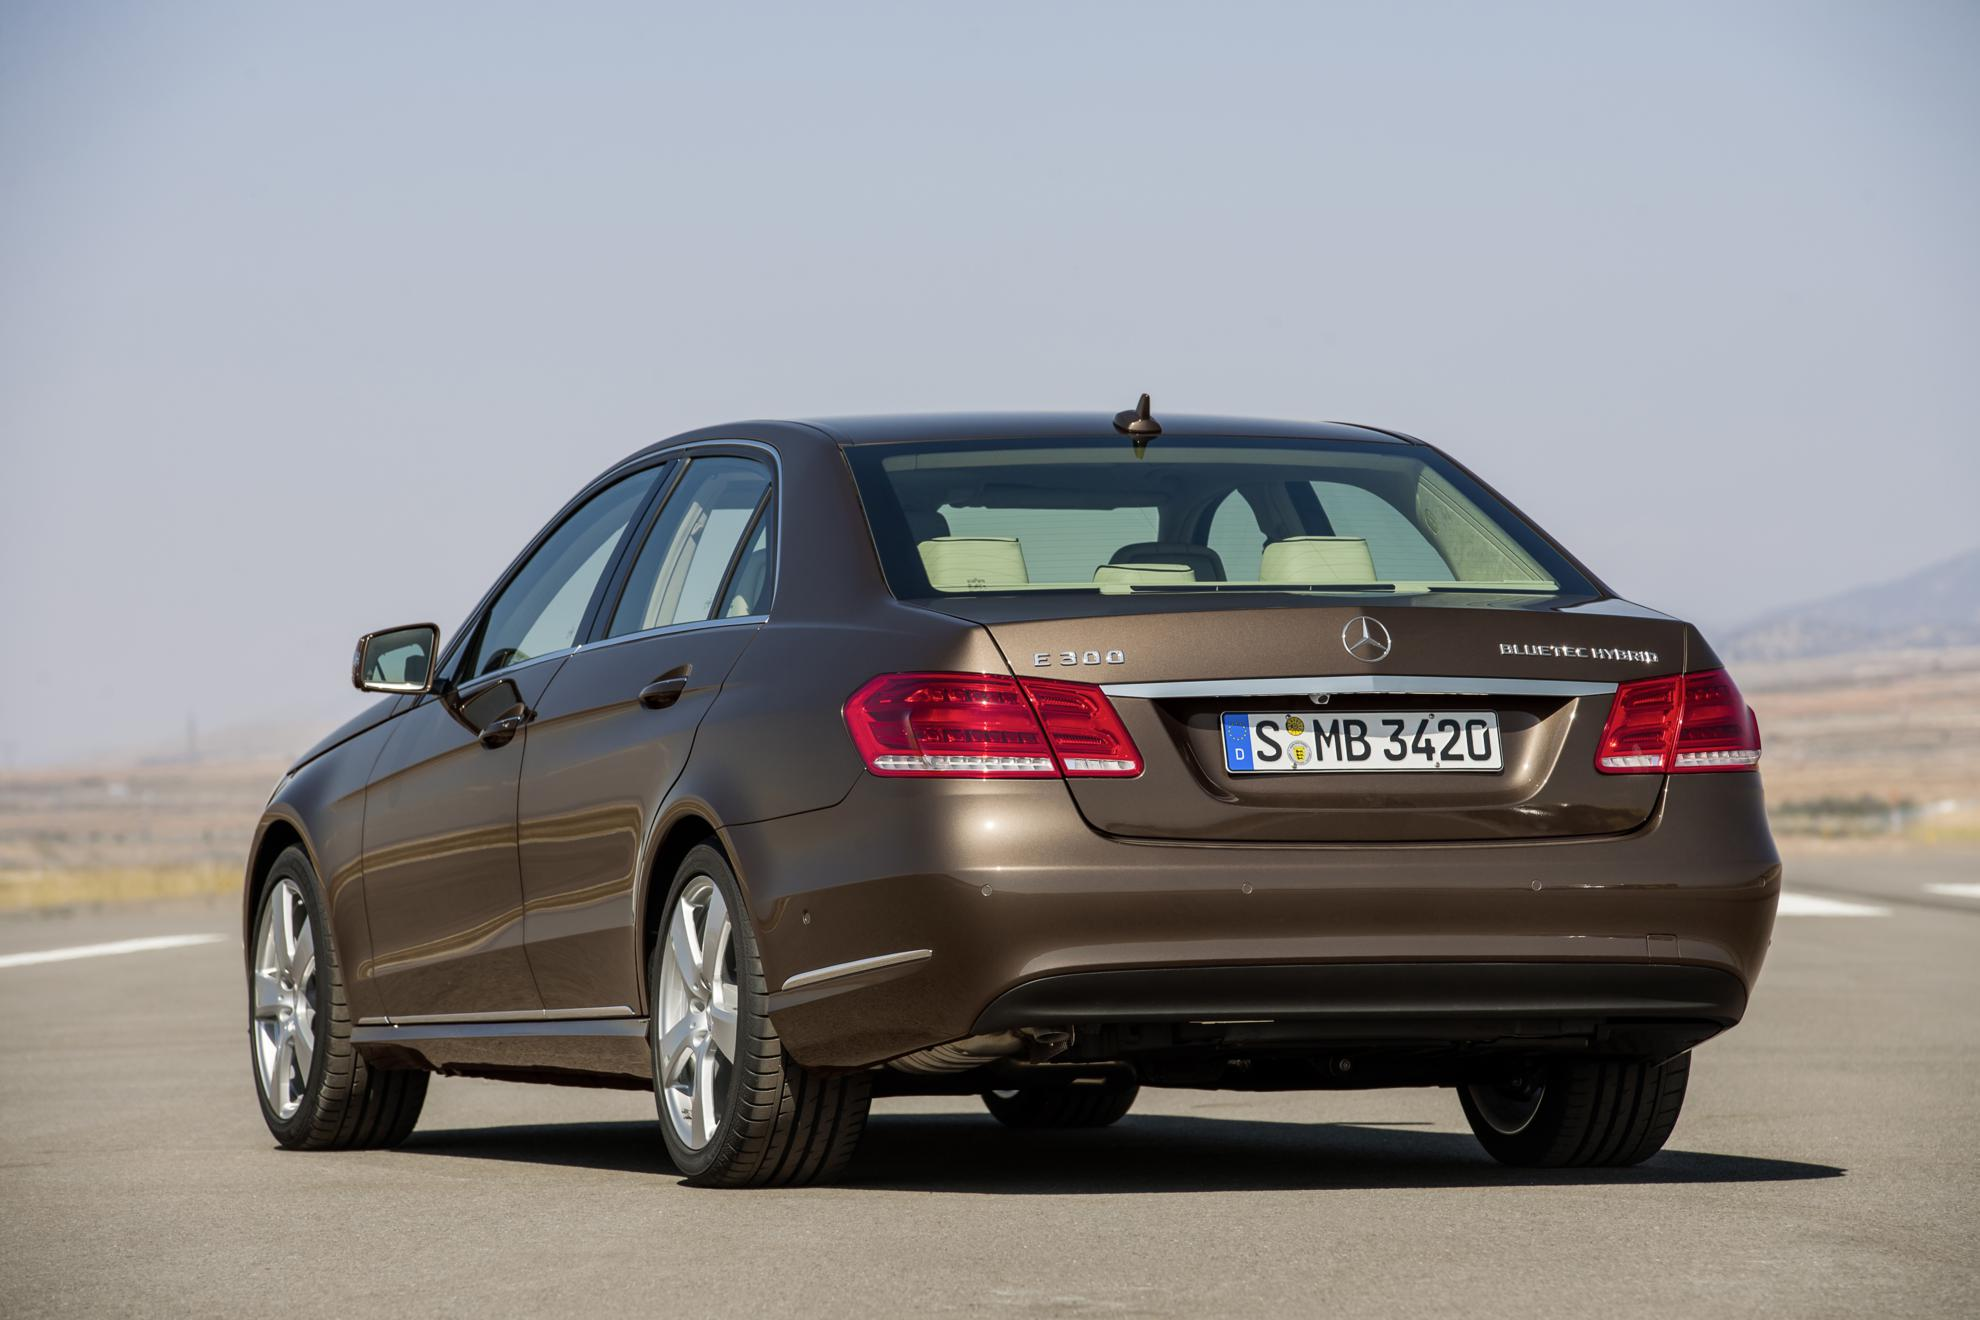 images of the new mercedes benz e class hybrid. Black Bedroom Furniture Sets. Home Design Ideas